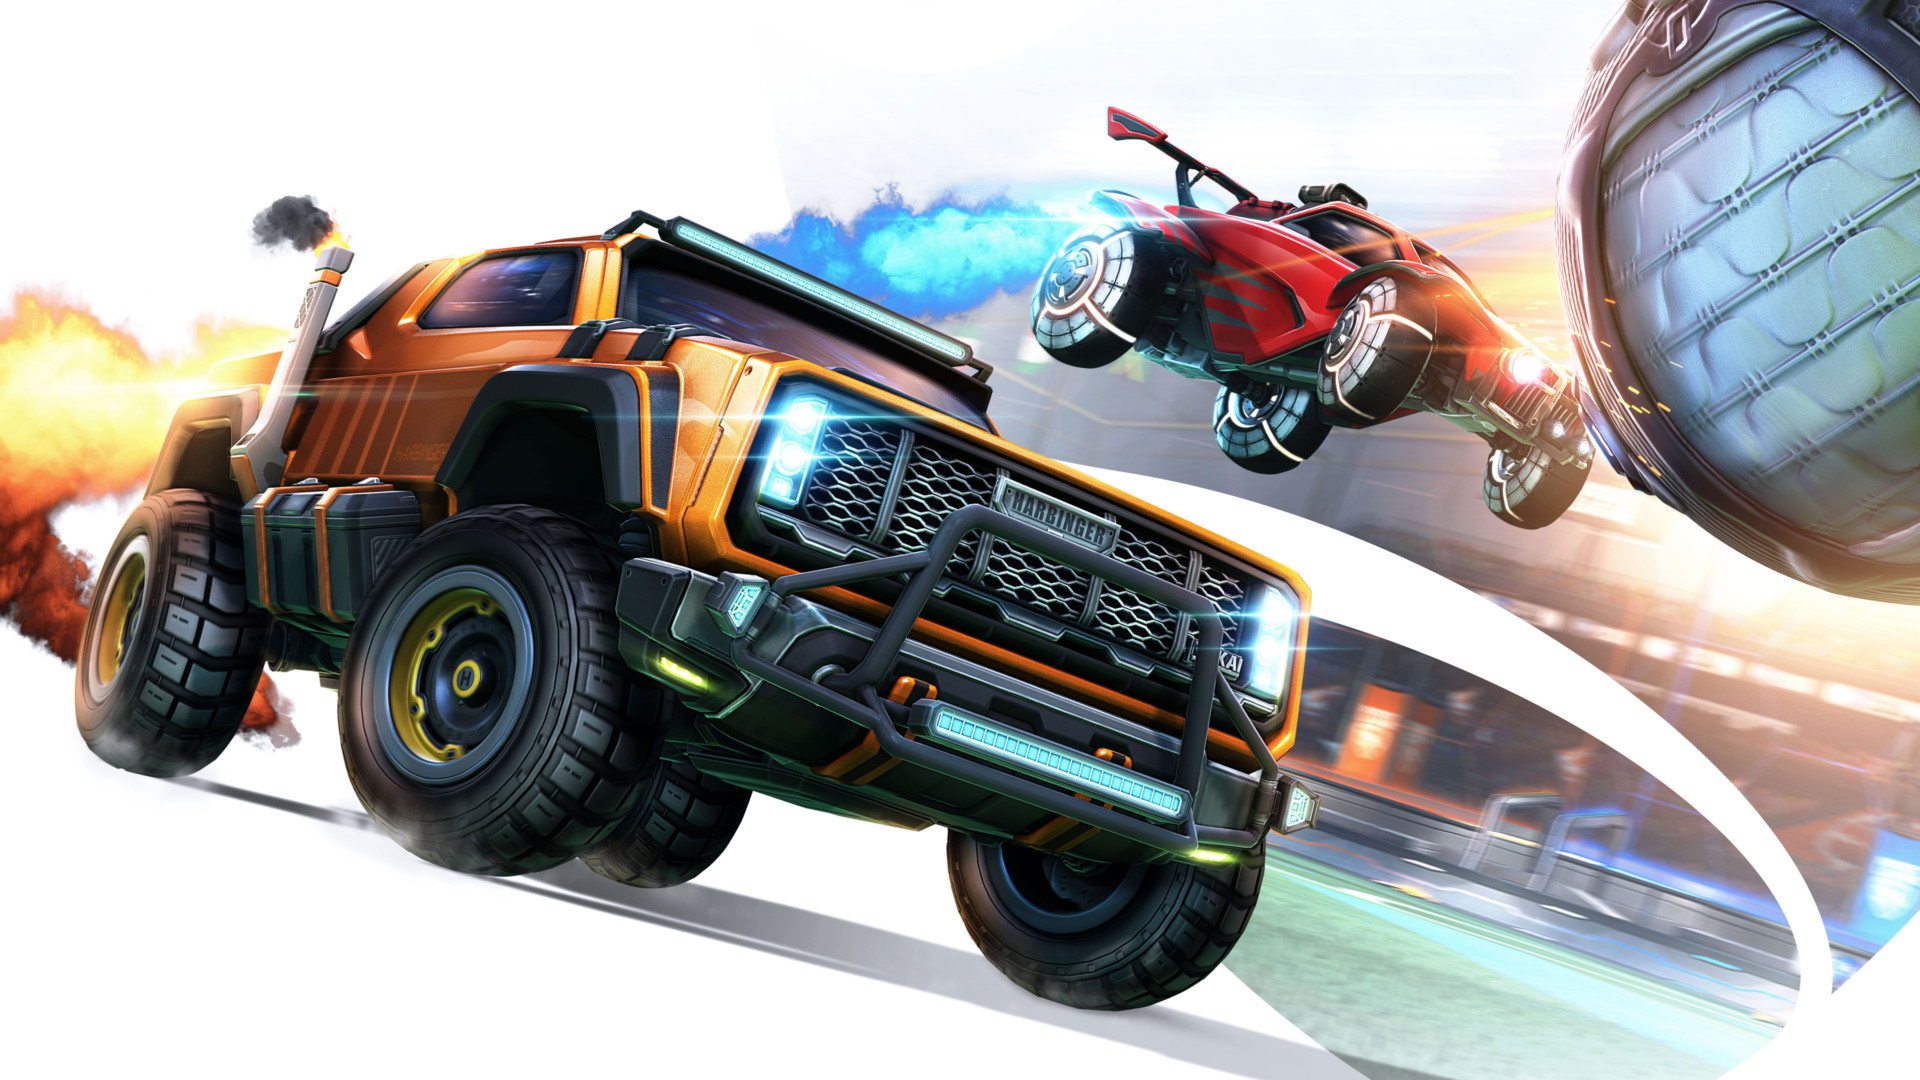 The Rocket League v1.84 patch update brings back a popular feature